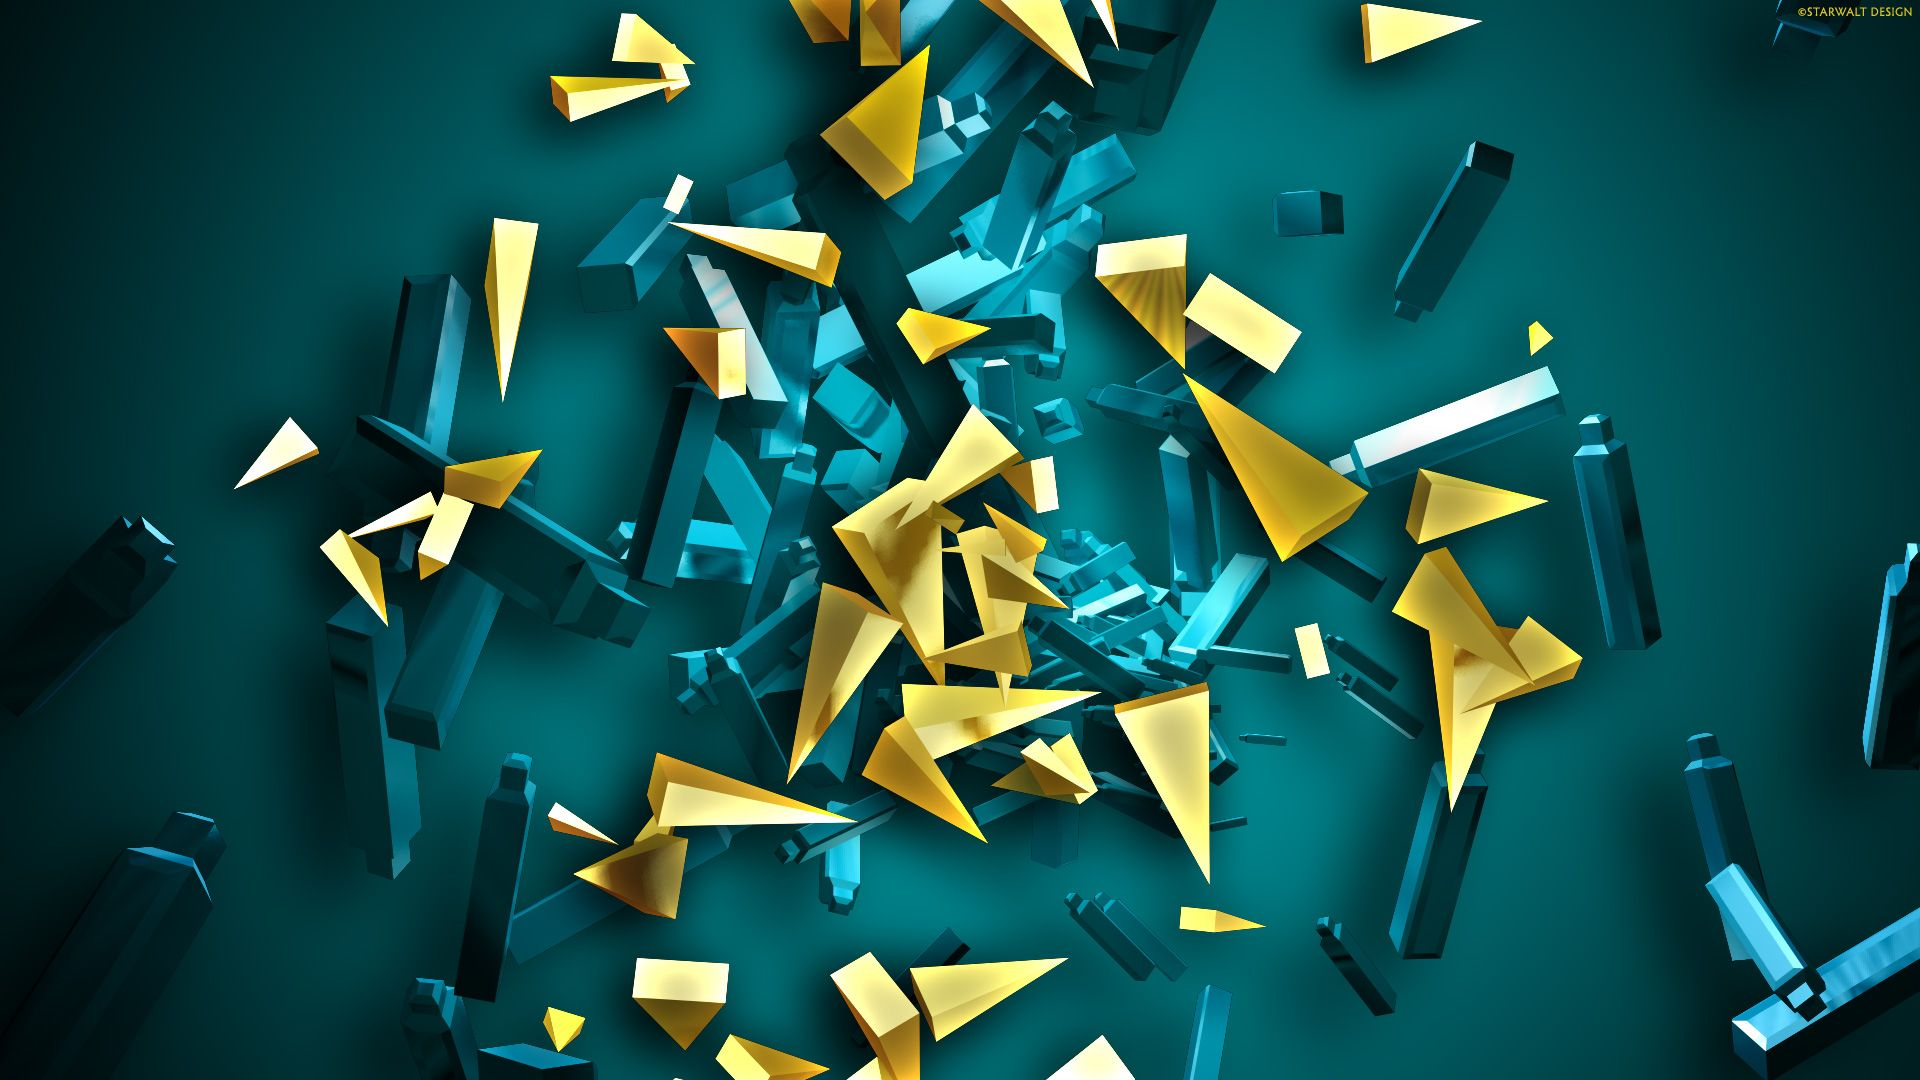 3d abstract hd wallpapers bstract , art, design, wallpaper, hd, high